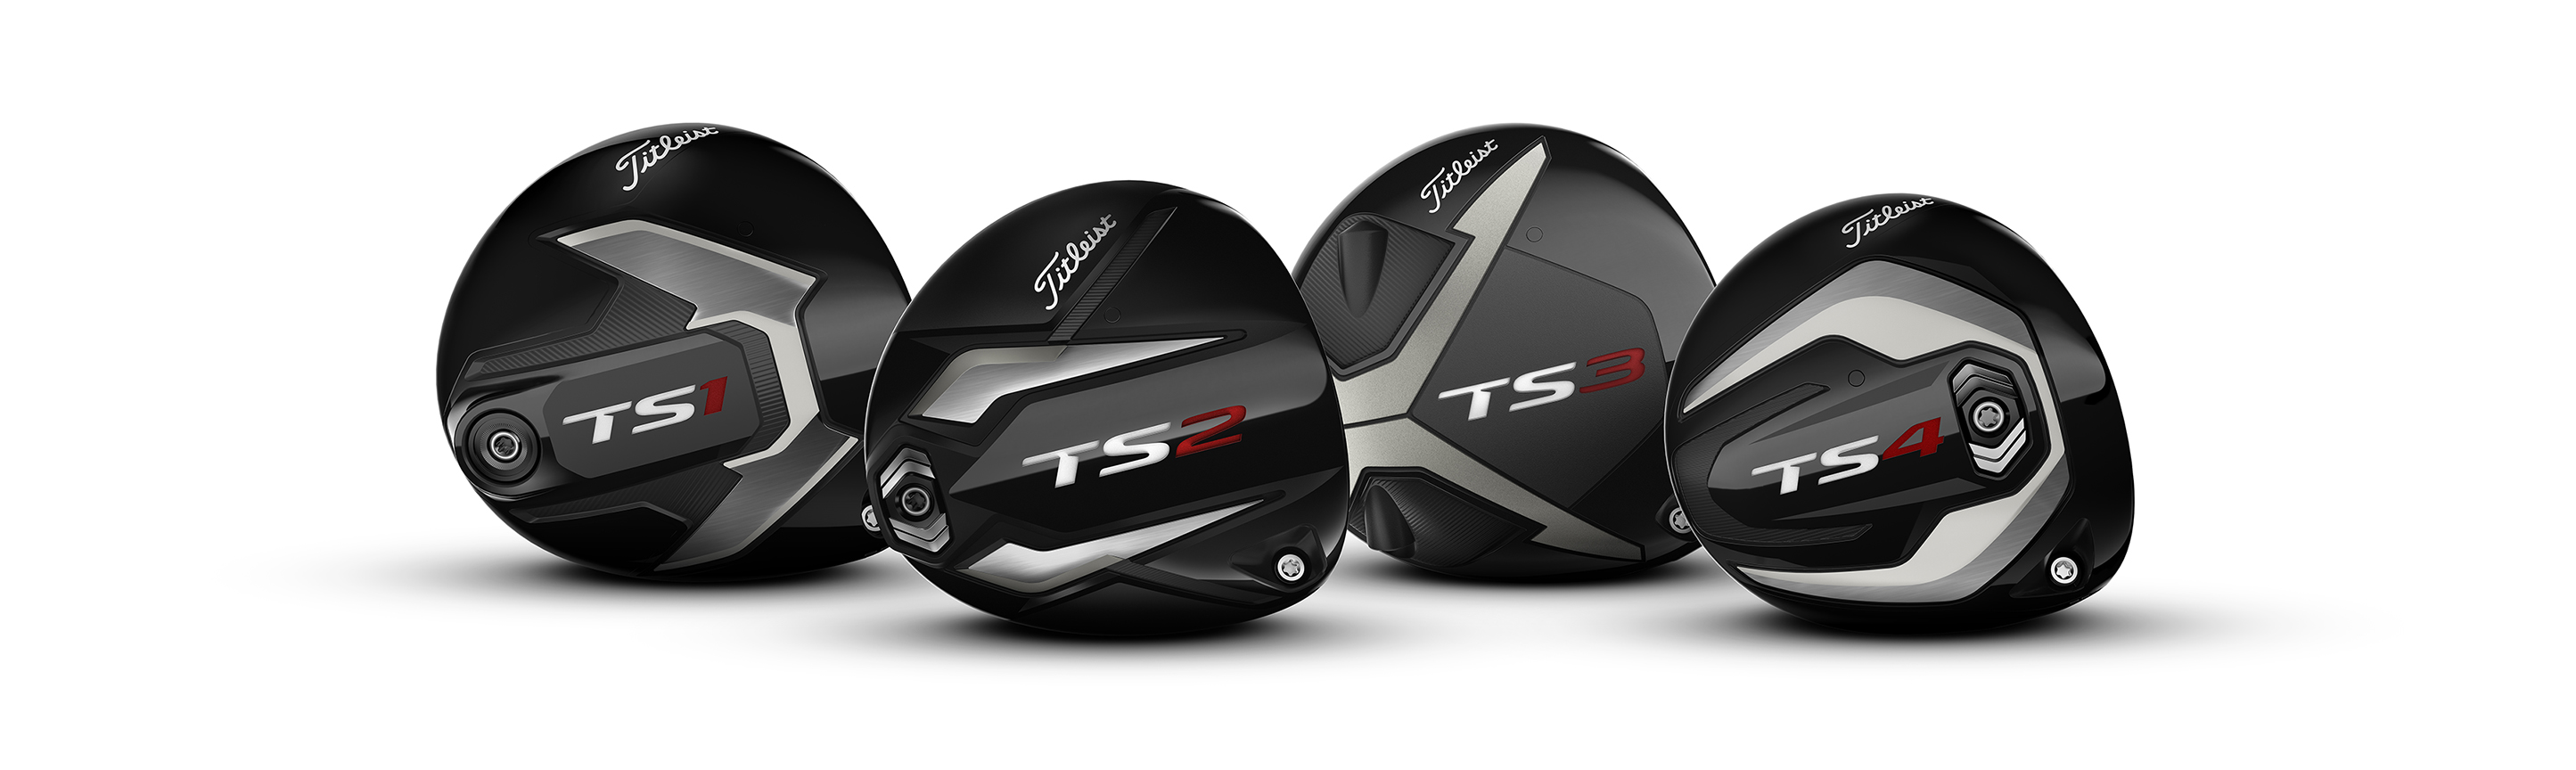 titleist ts1 driver family